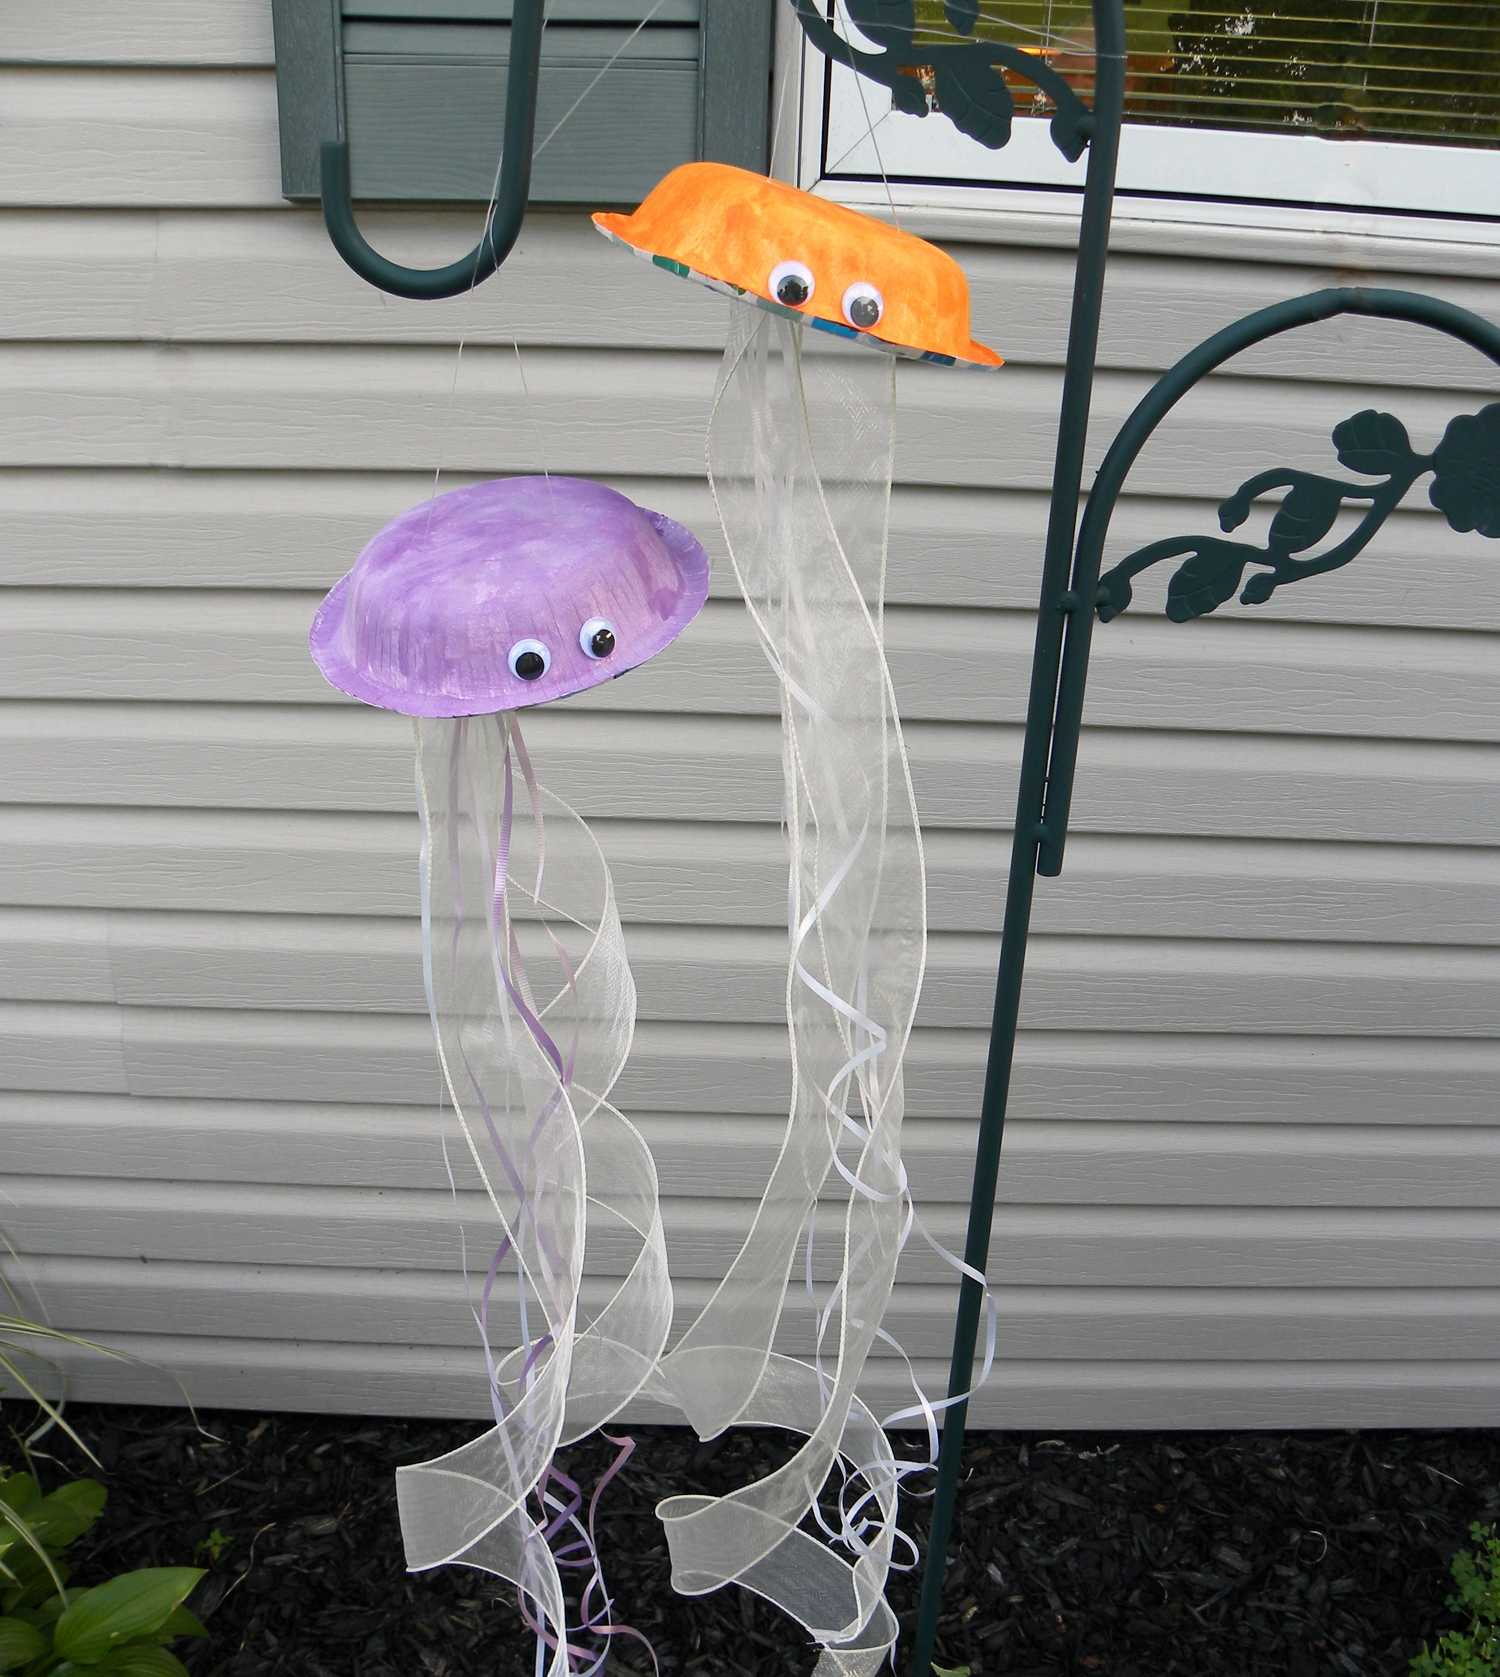 Foam Platter Jellyfish Activity Preschool Children Akctivitiys